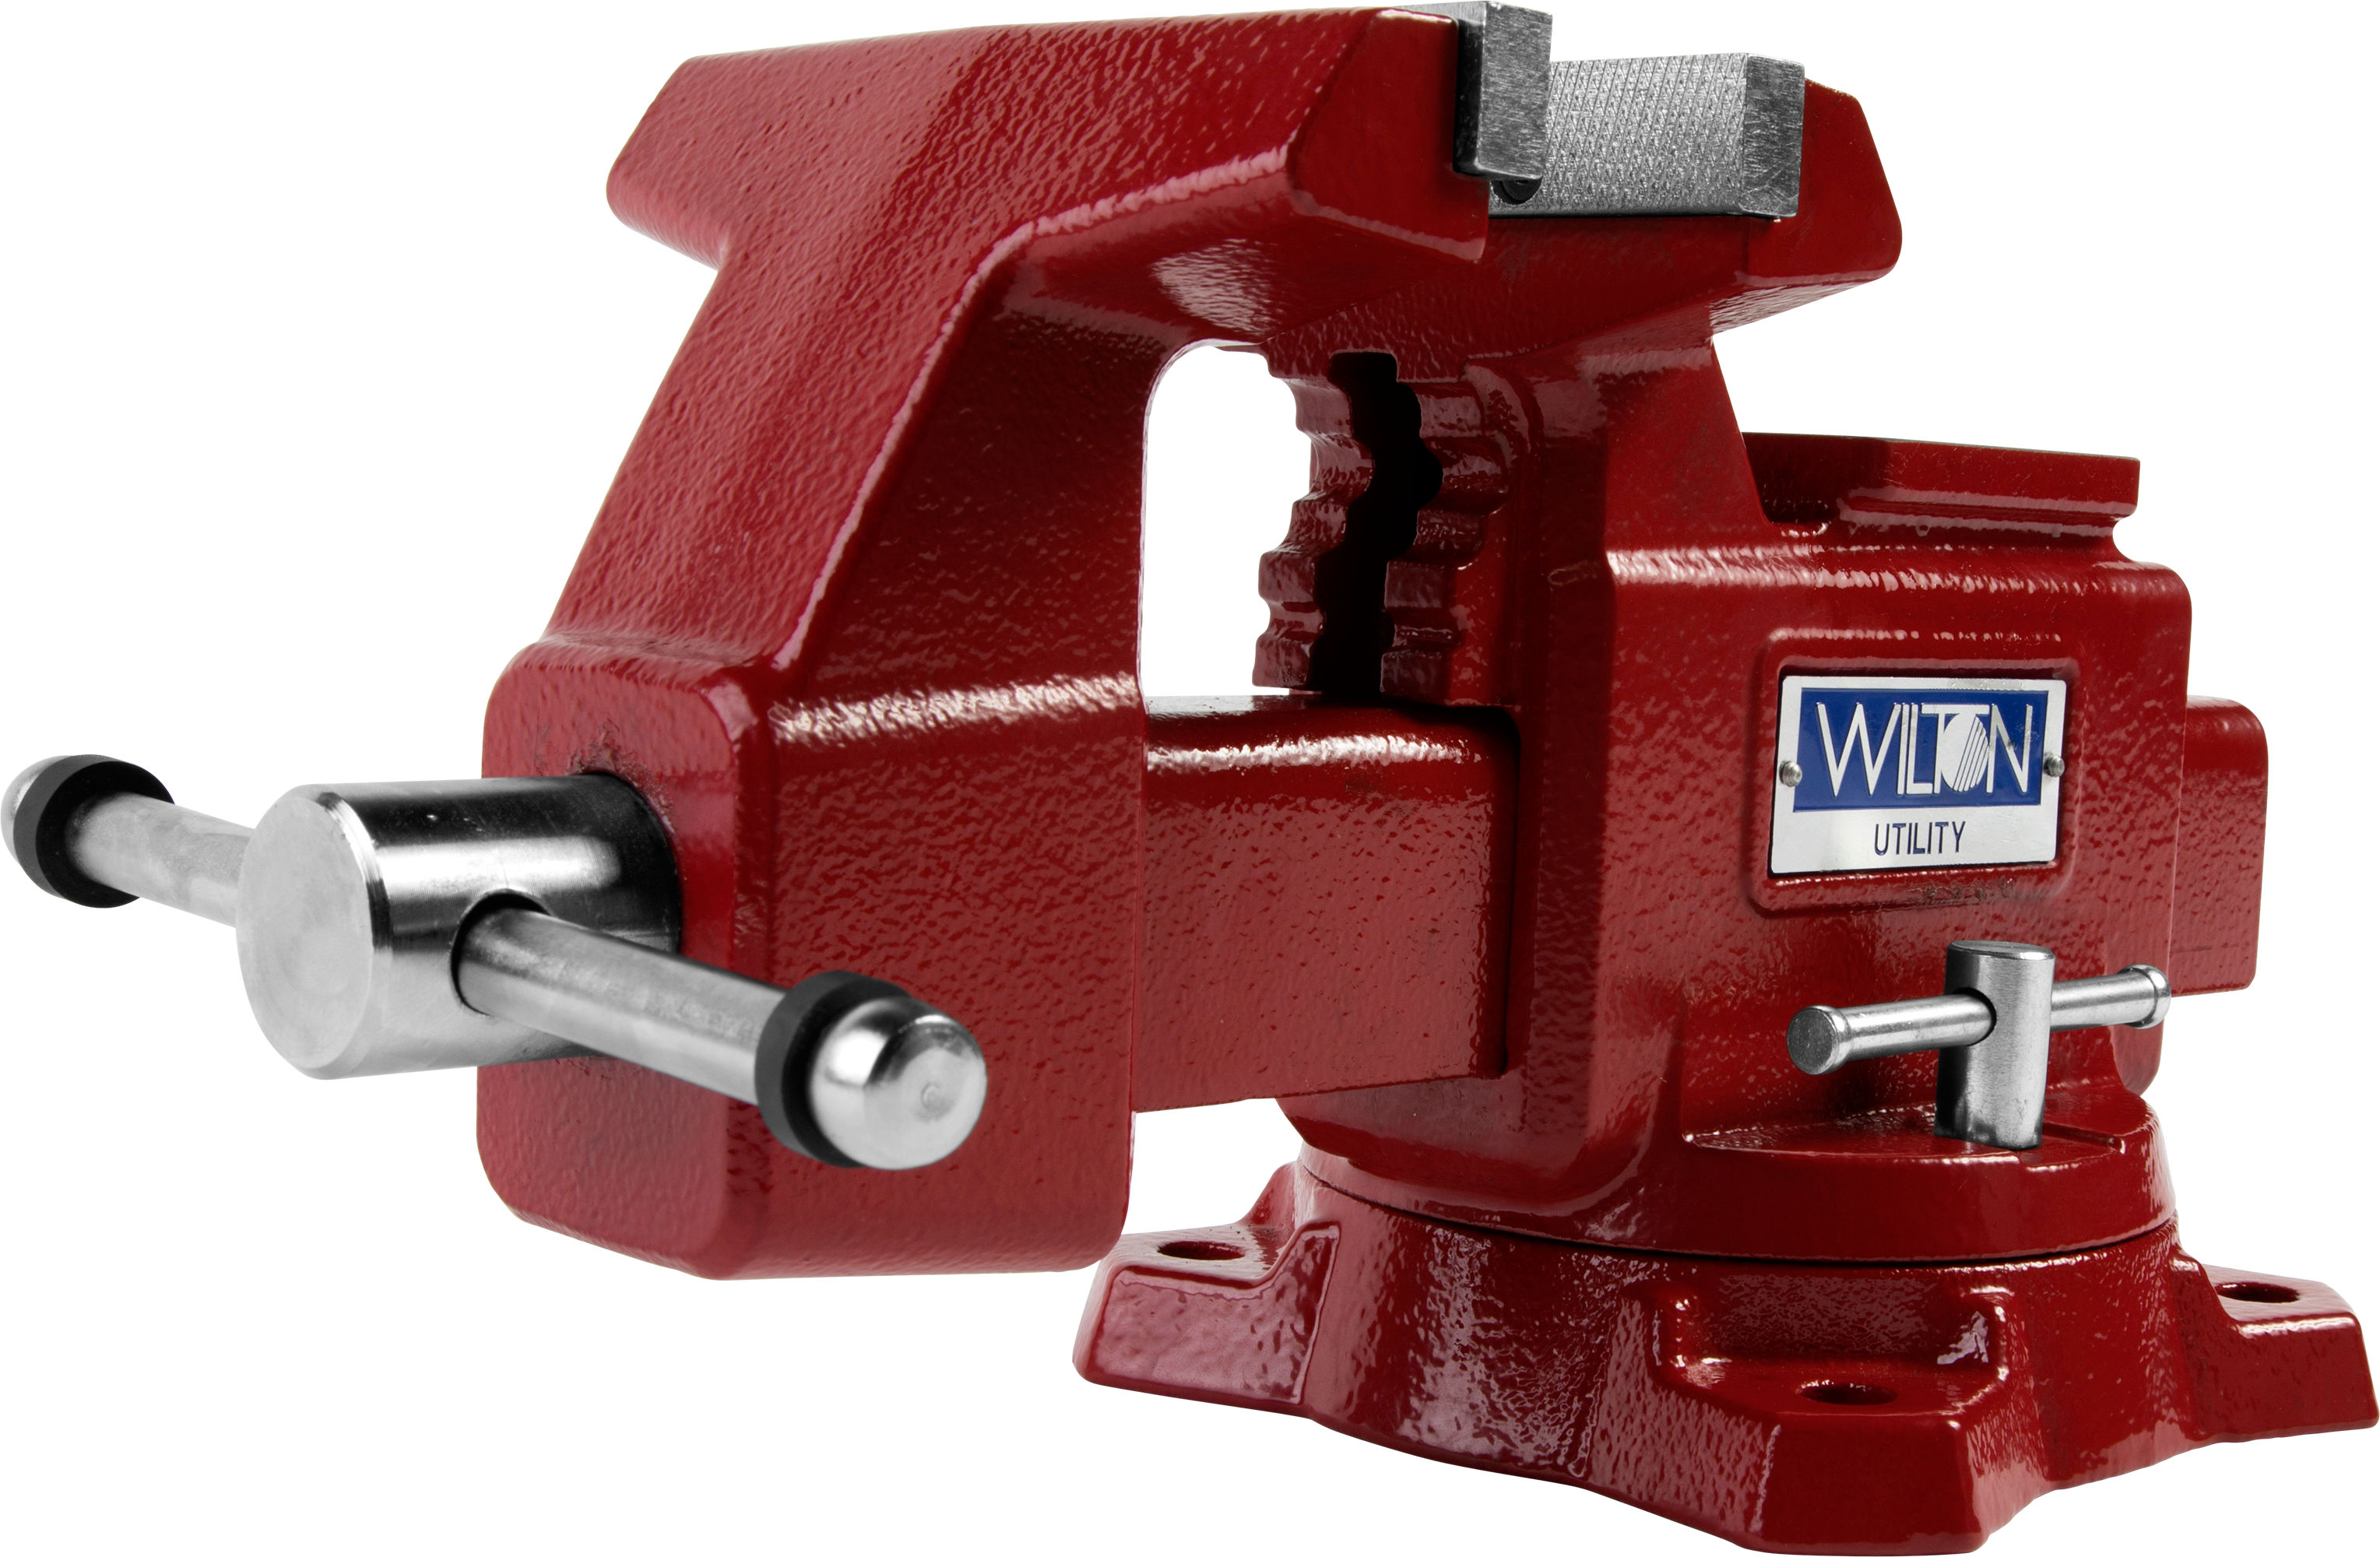 "Manual: Utility Bench Vise 5-1/2"" Jaw Width, 5"" Jaw Opening, 360° Swivel Base"